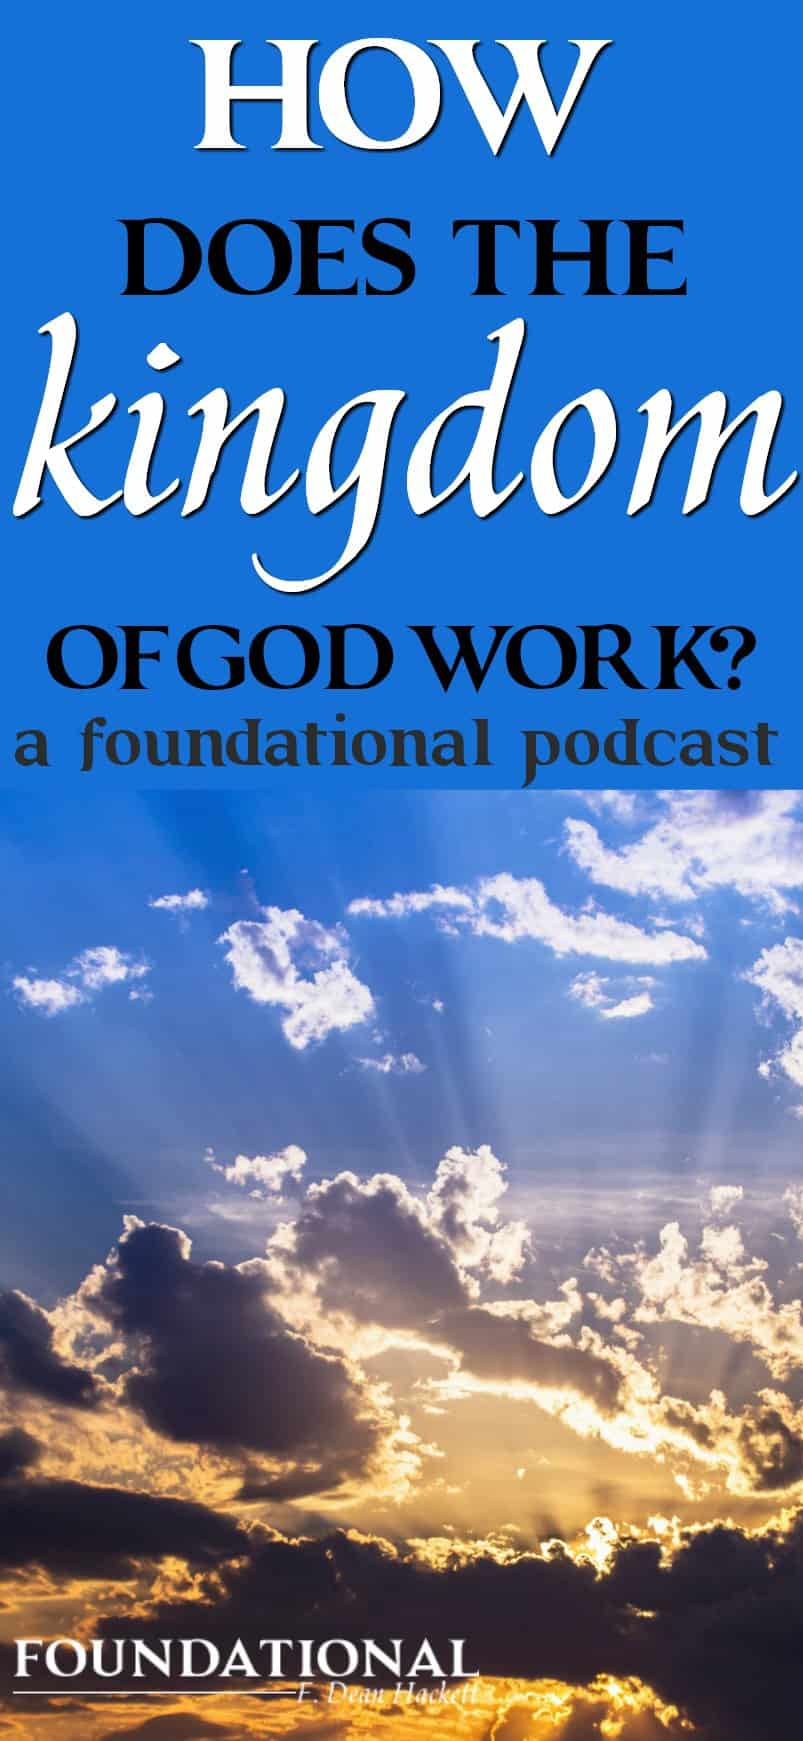 What makes the kingdom of God different from kingdoms on earth? Find the answers to these questions in this week's podcast. #Christianliving #Bible #Spiritualgrowth #spiritualwarfare #warroom #warrior #identityinChrist #God